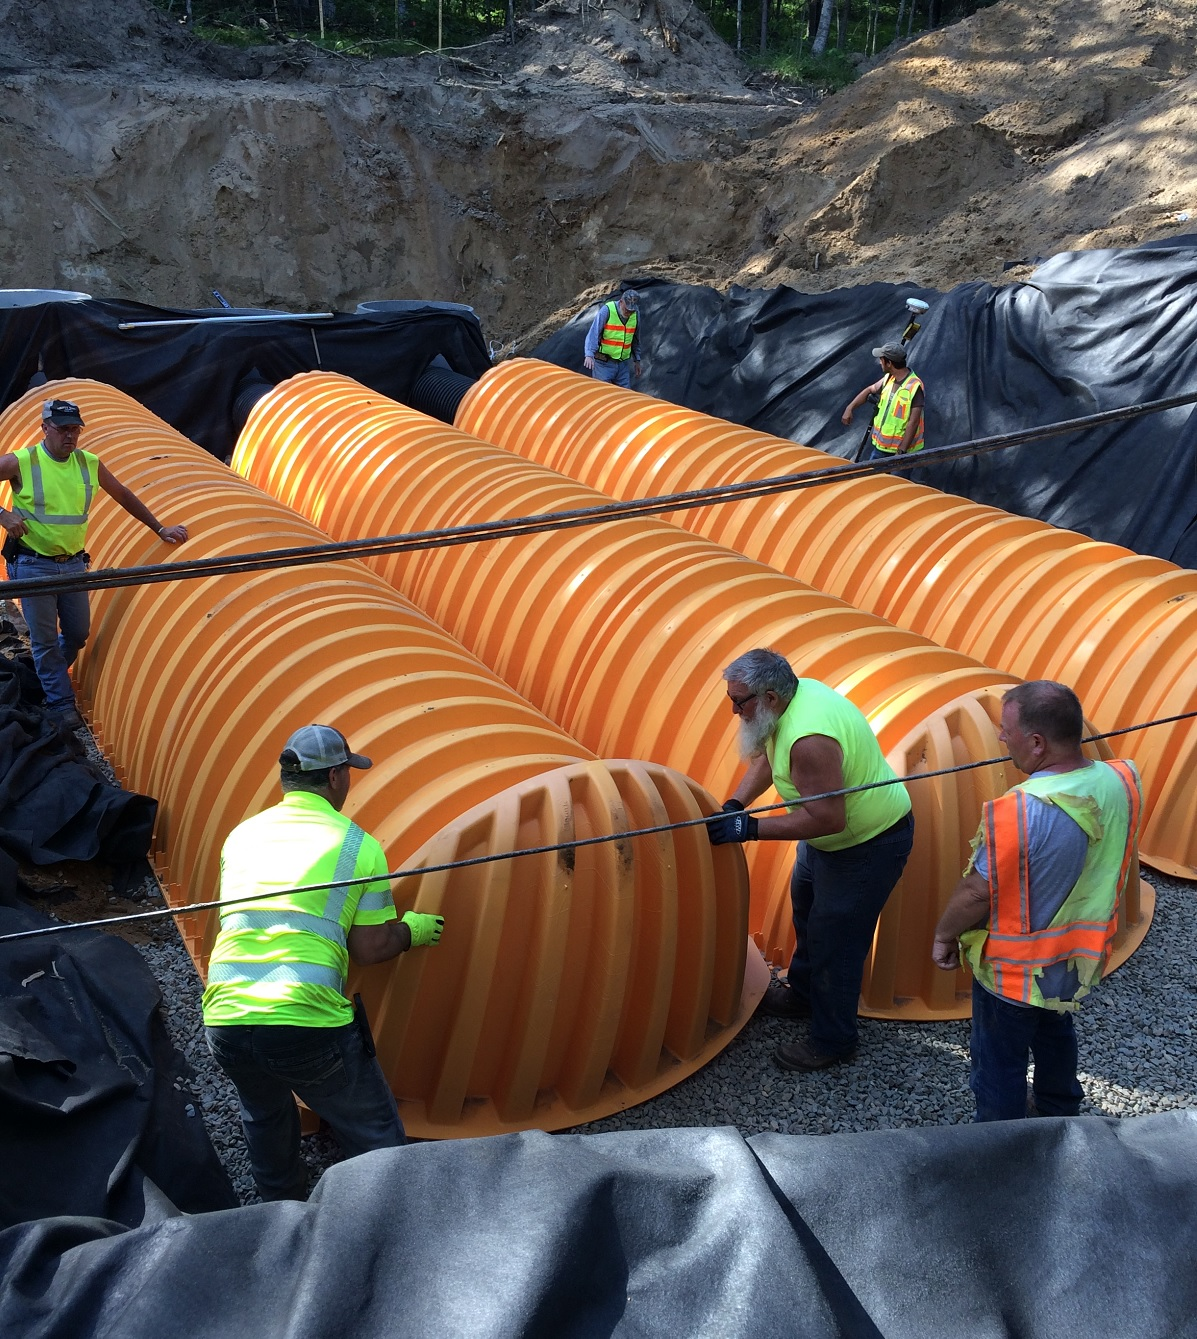 Stormwater runoff storage tanks